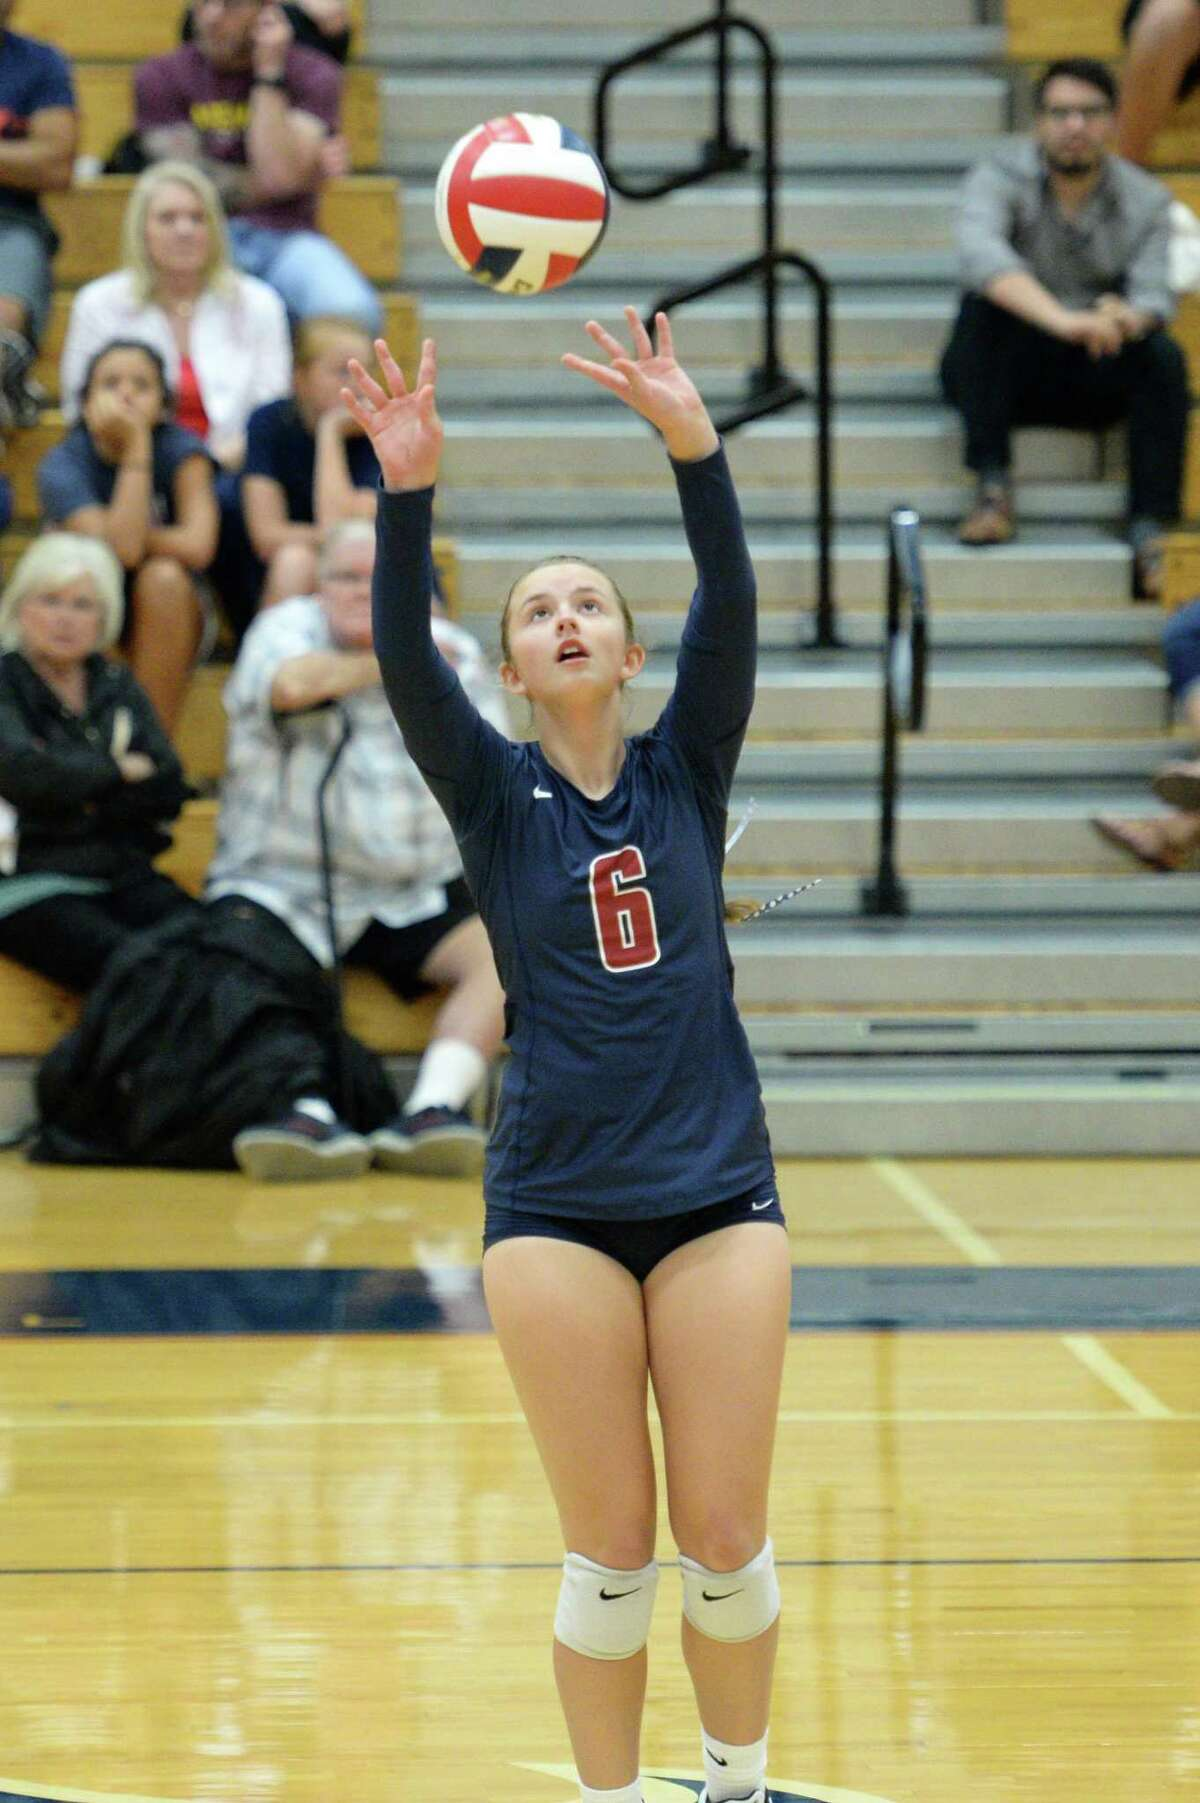 Cassidy Karonka (6) of Tompkins sets a ball during the third set of a volleyball match between the Tompkins Falcons and the Travis Tigers on Tuesday, August 6, 2019 at the Travis HS, Katy, TX.